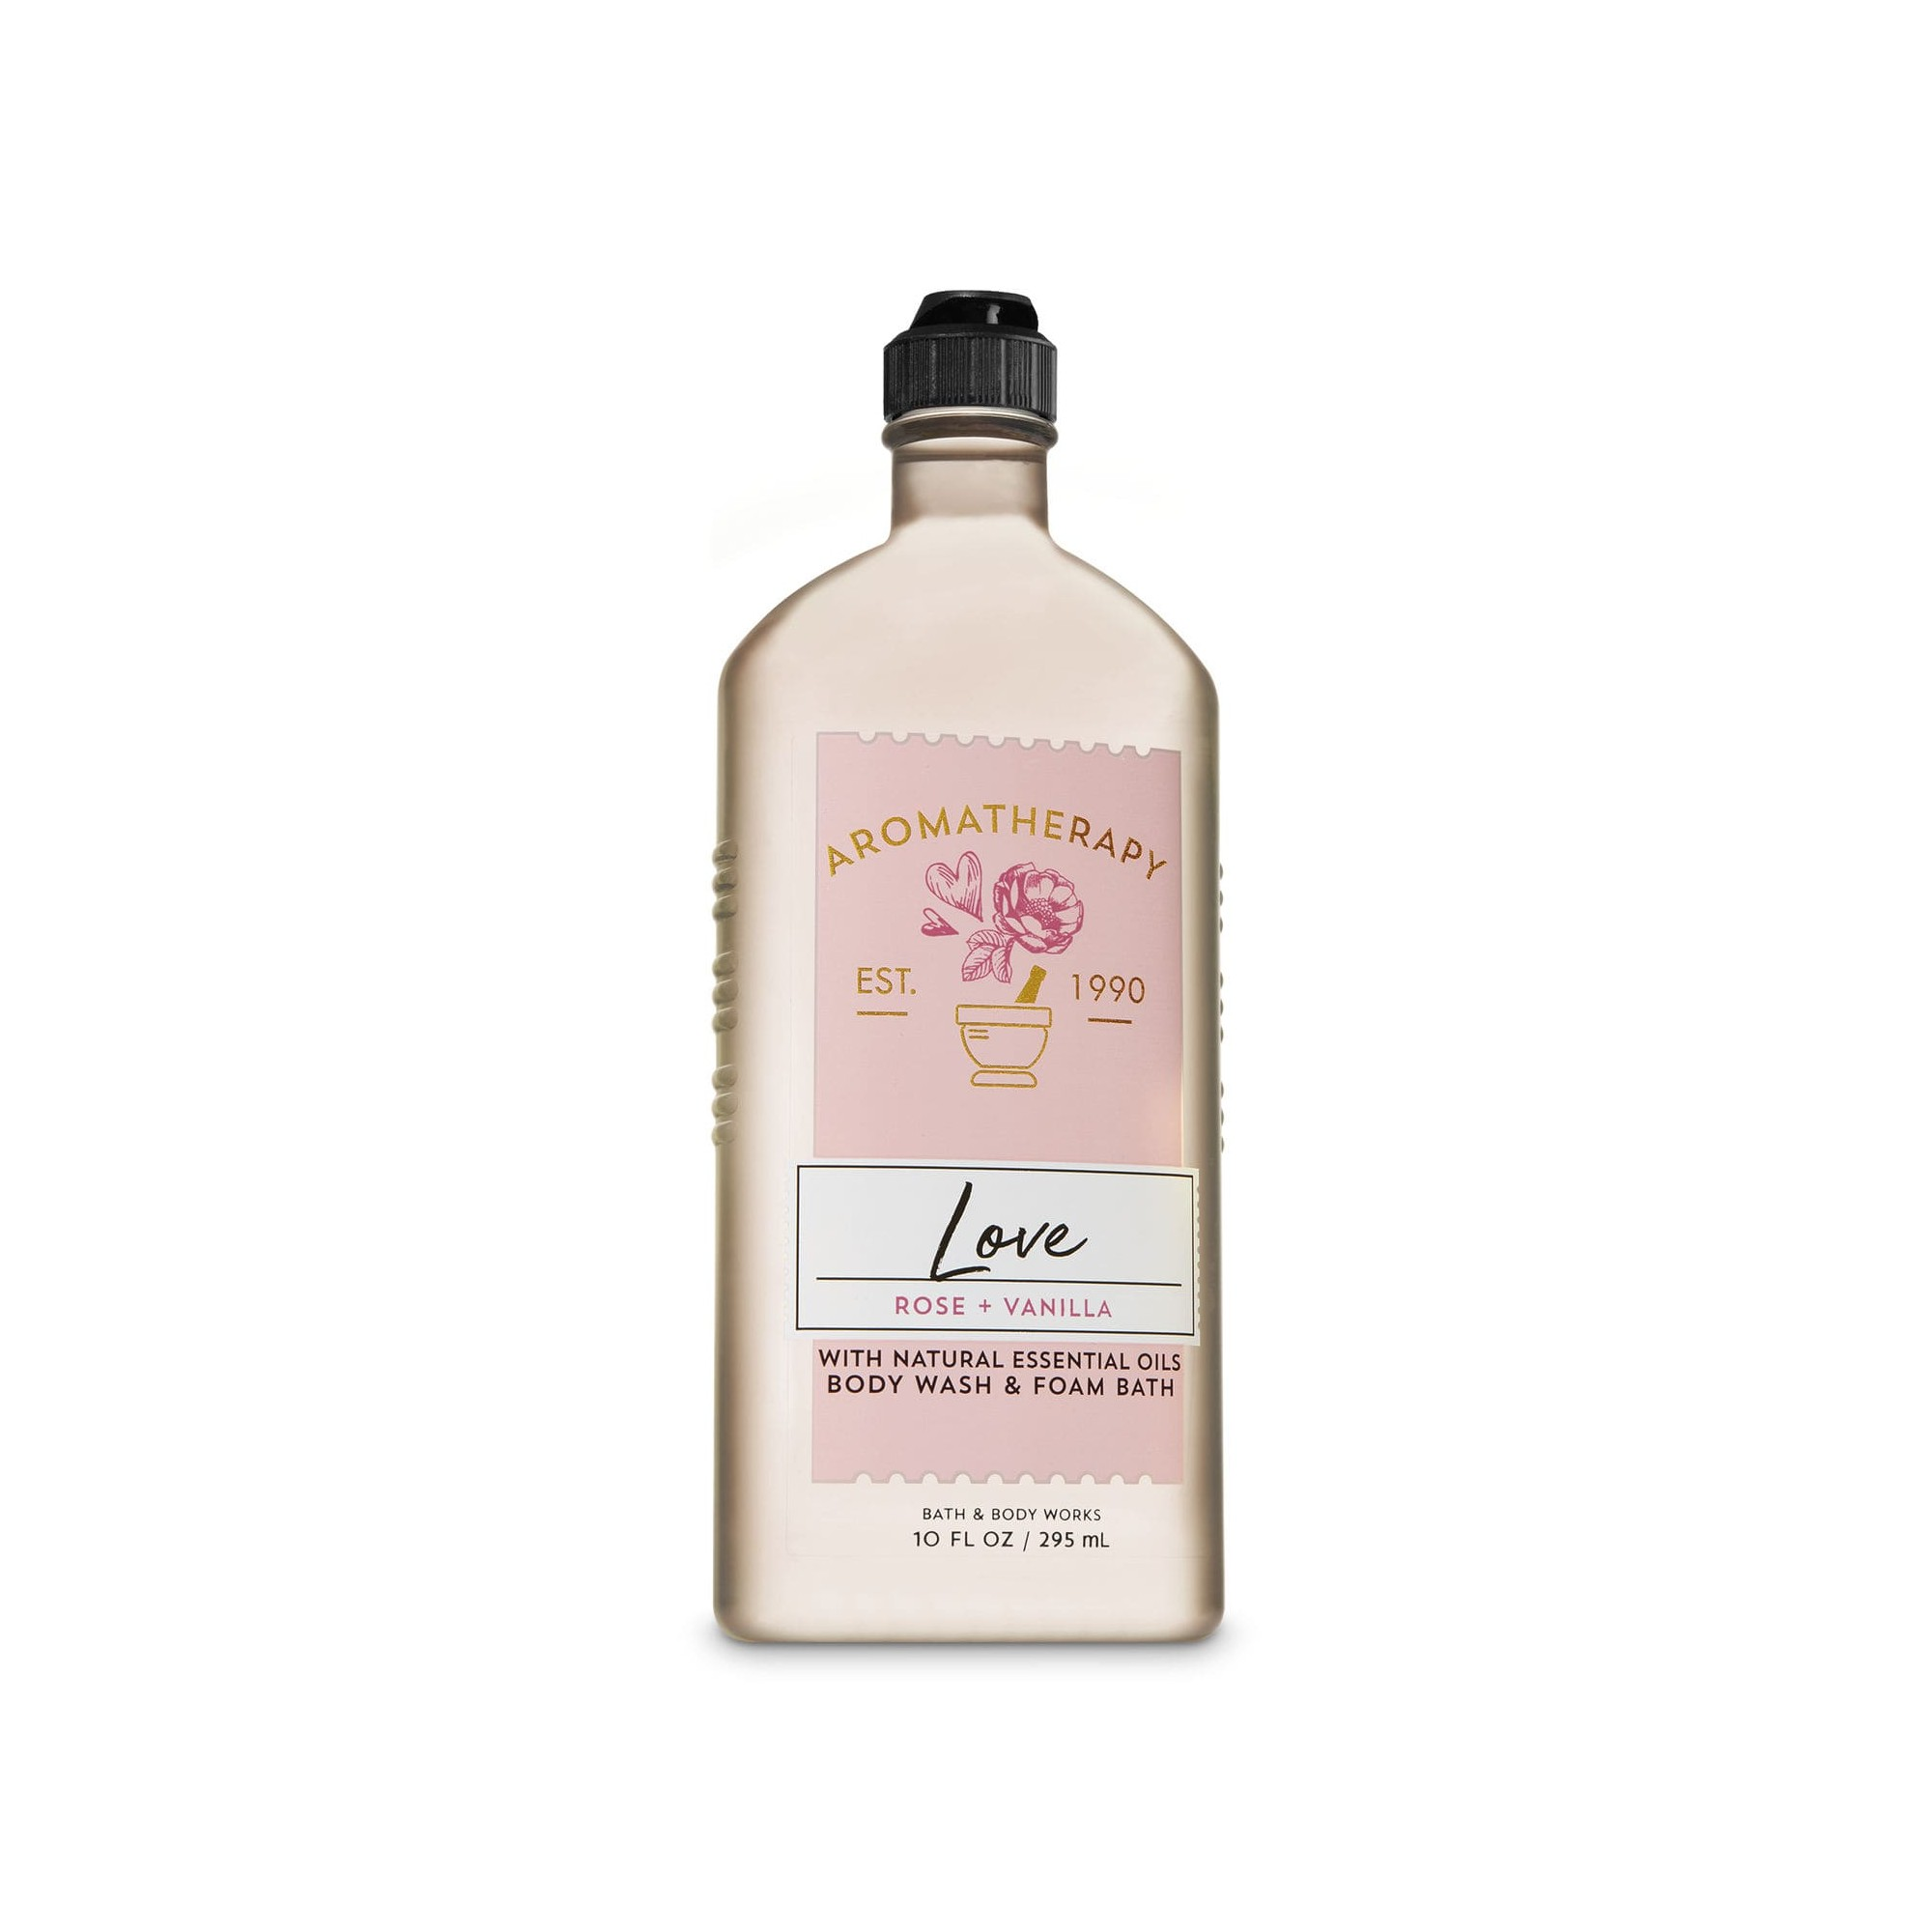 Bath & Body Works Aromatherapy Love Rose Vanilla Body Wash